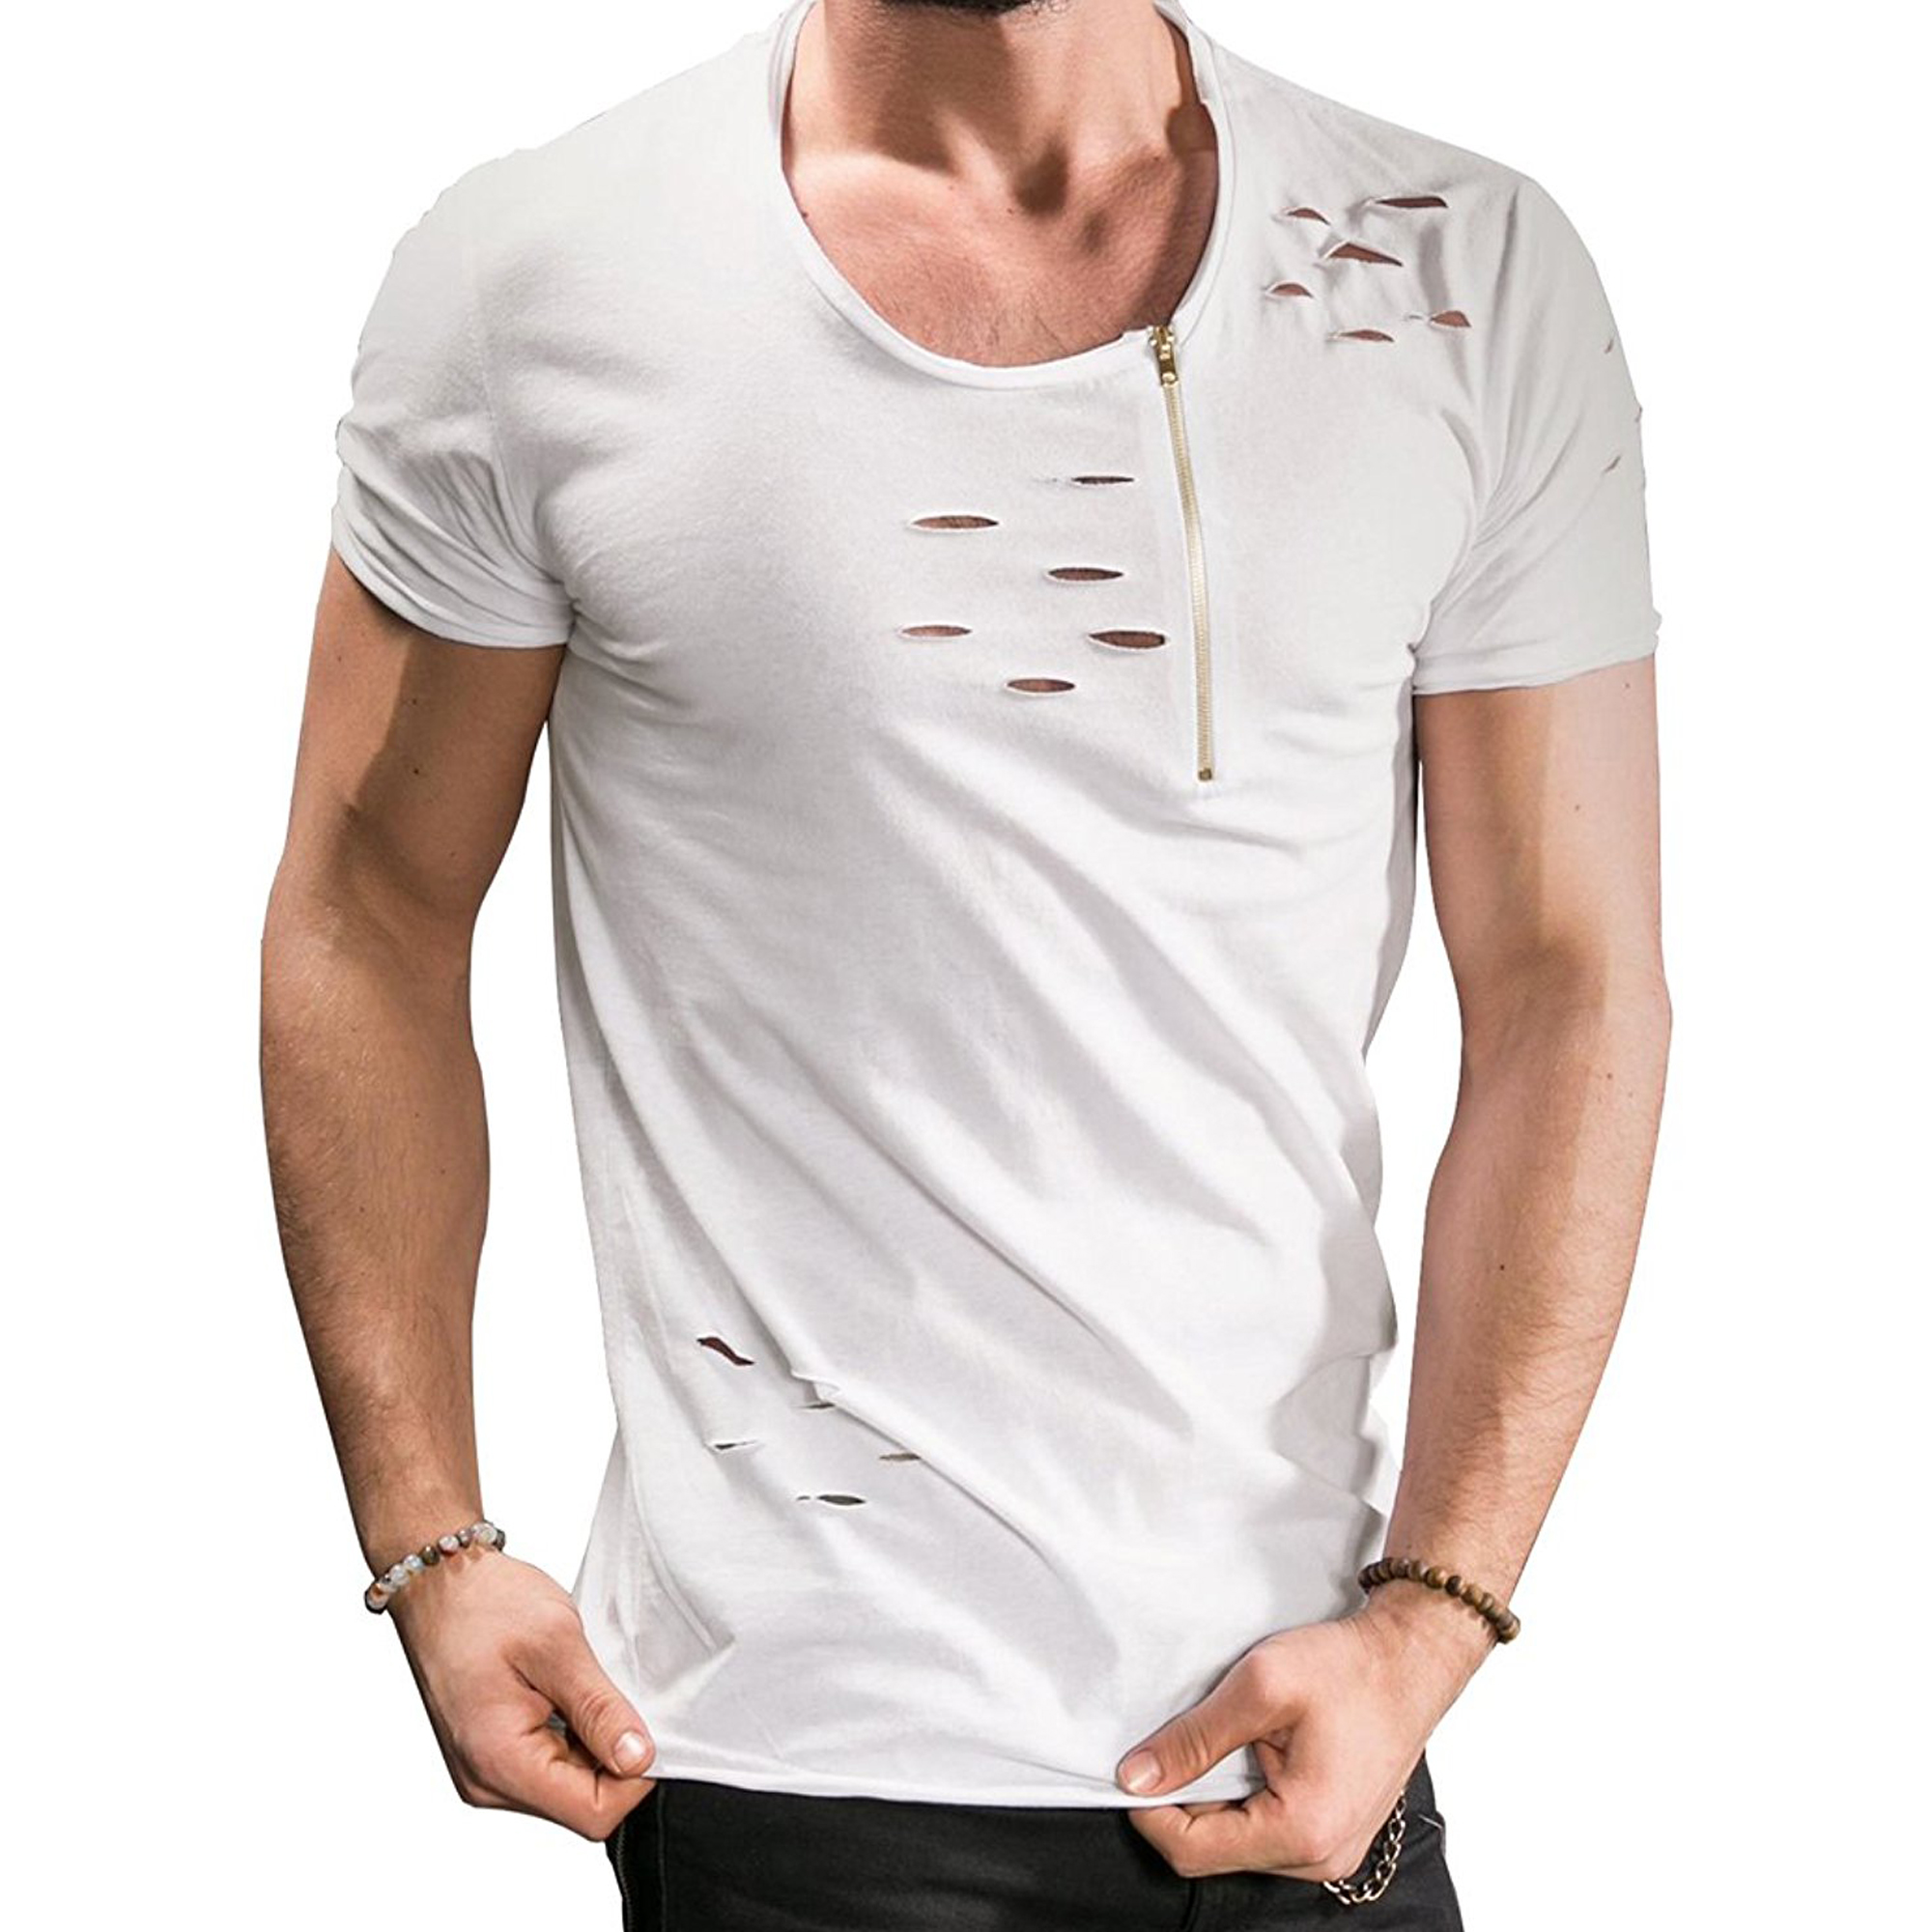 PAUSE White Solid Cotton Round Neck Slim Fit Short Sleeve Men's T-Shirt